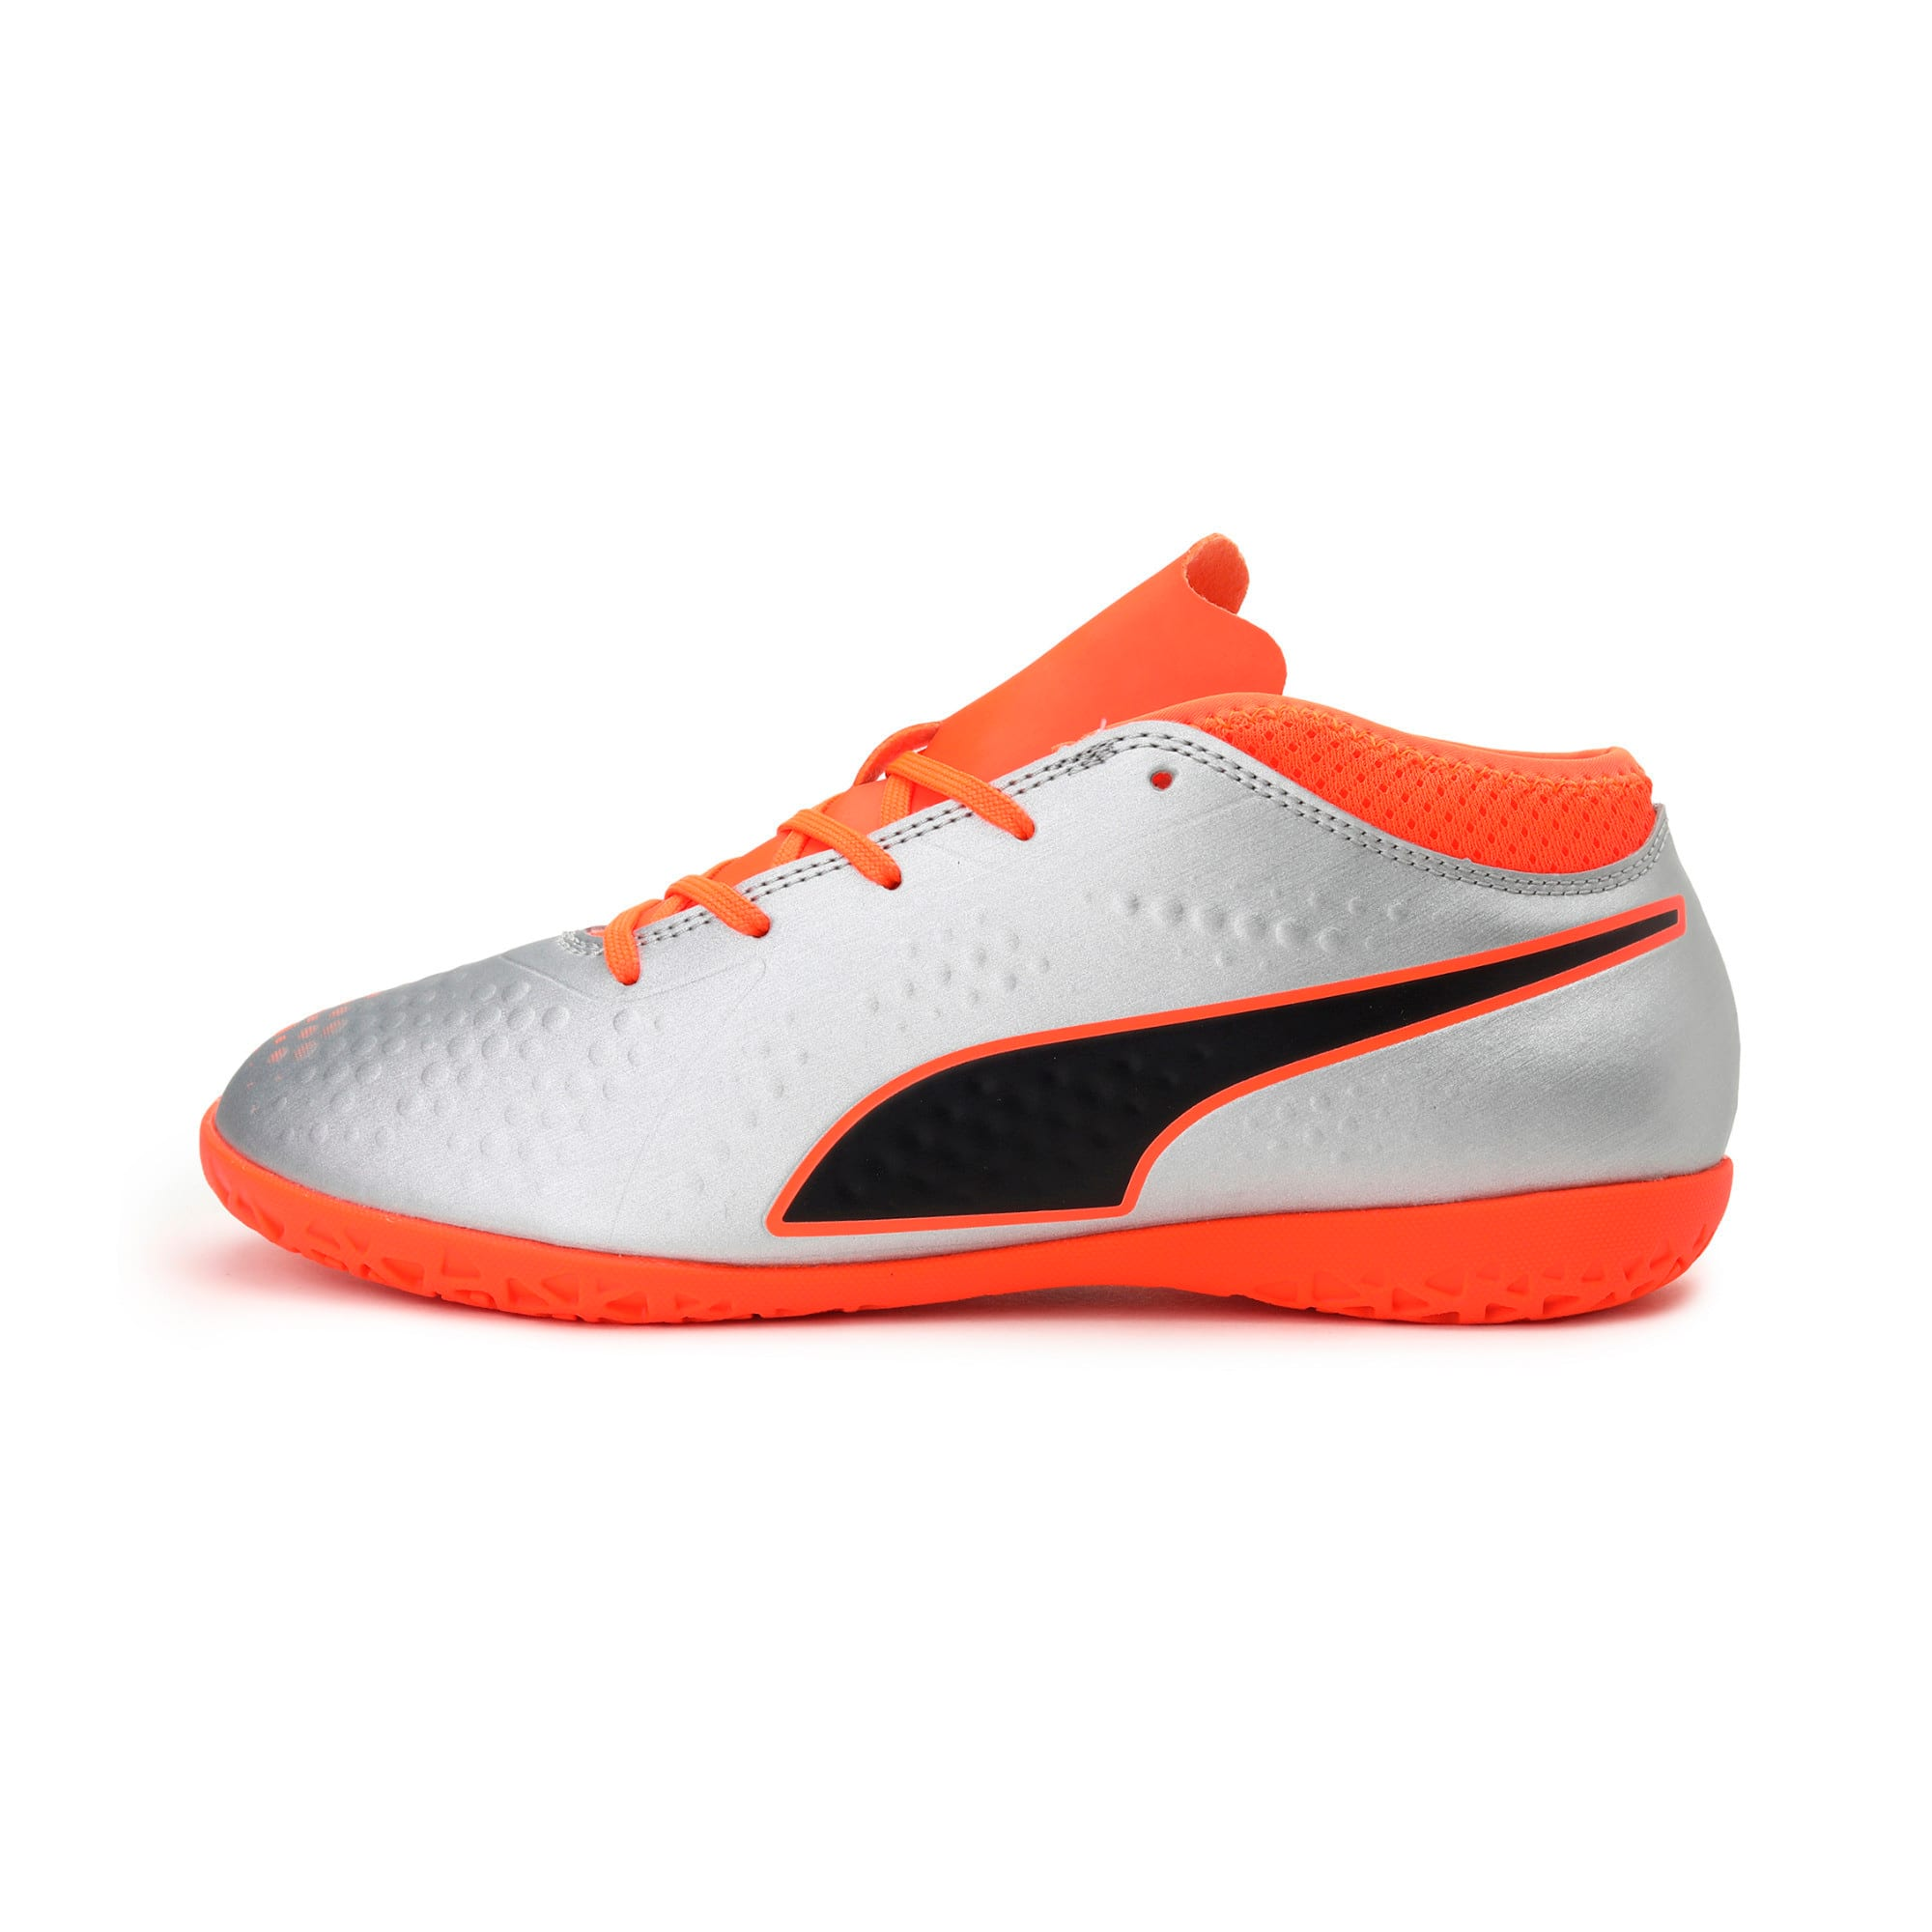 Thumbnail 1 of PUMA ONE 4 Synthetic IT Kids' Football Shoes, Silver-Orange-Black, medium-IND